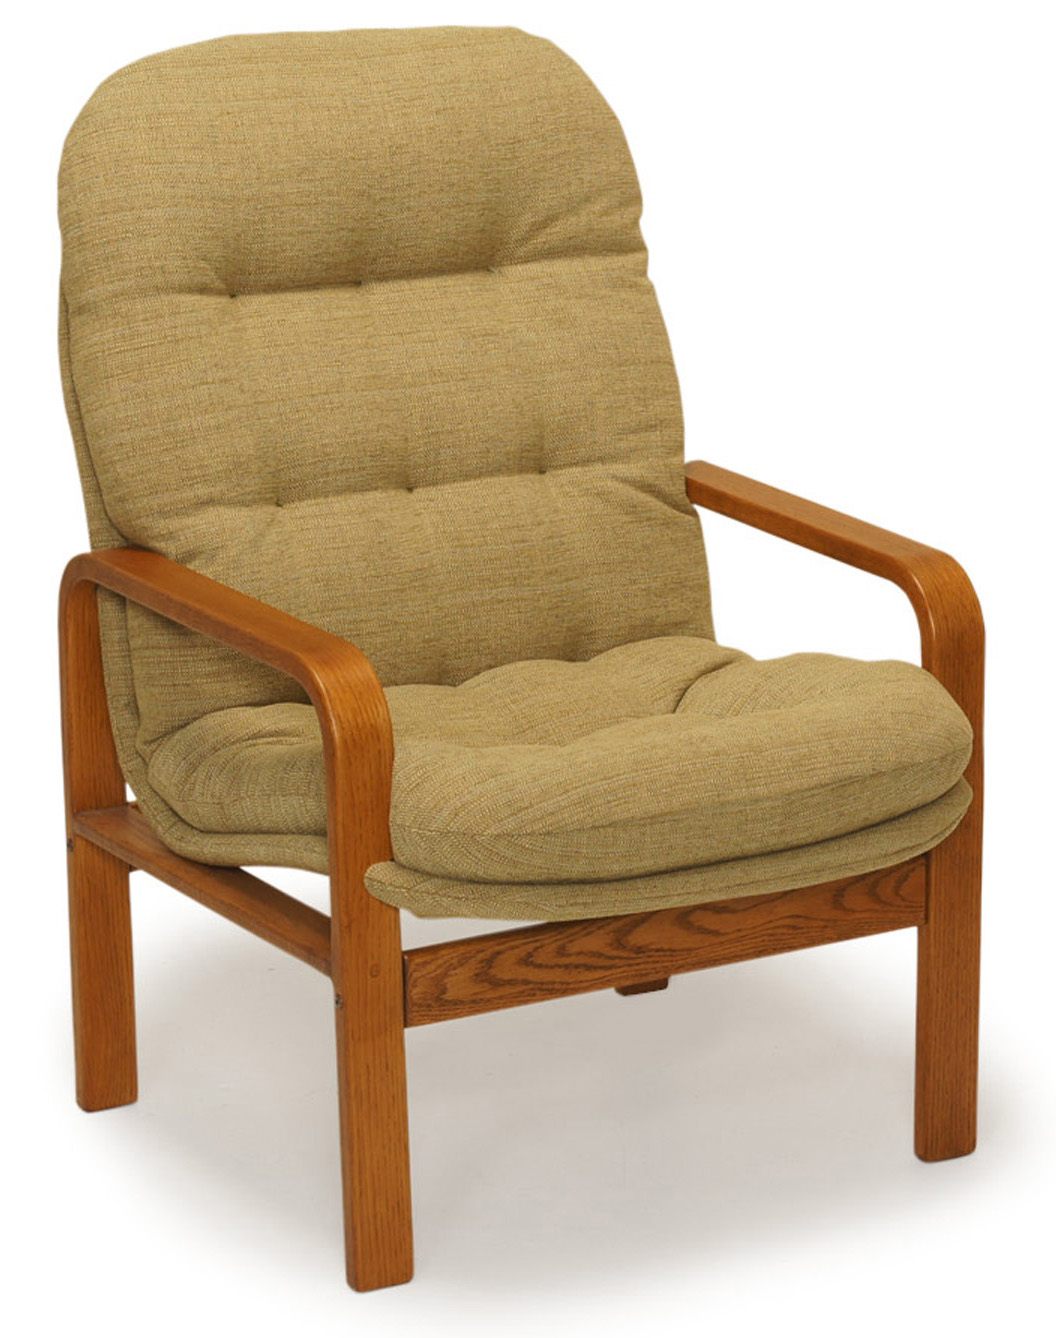 chair design parameters fishing box chairs for every body  brigger furniture